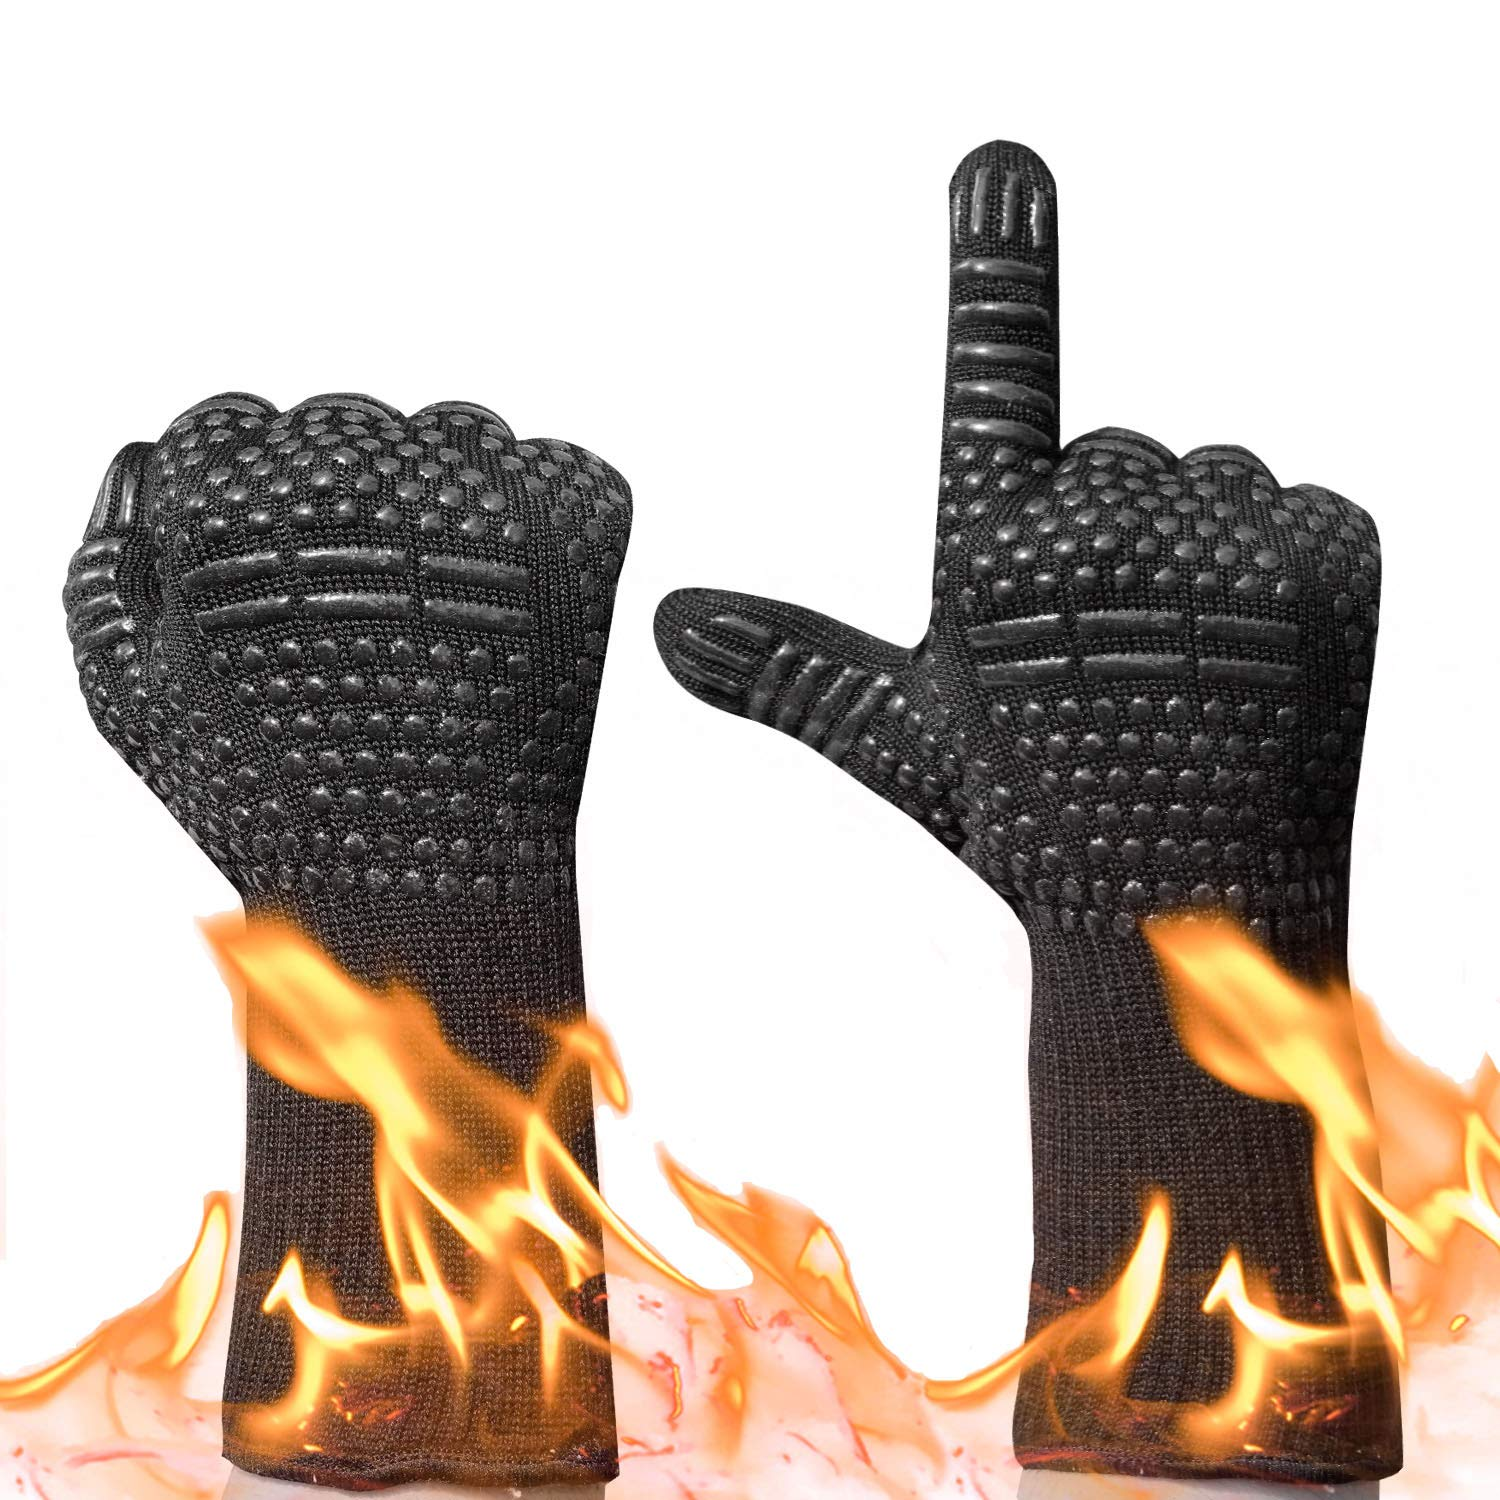 BBQ Grilling Gloves,932°F Heat Resistant Oven Mitts Comfortable Wearing Gloves, Barbecue Gloves for Men Women, 13.8(inch) Long for Extra Forearm Protection, 1 Pair (Black)   Runwinker